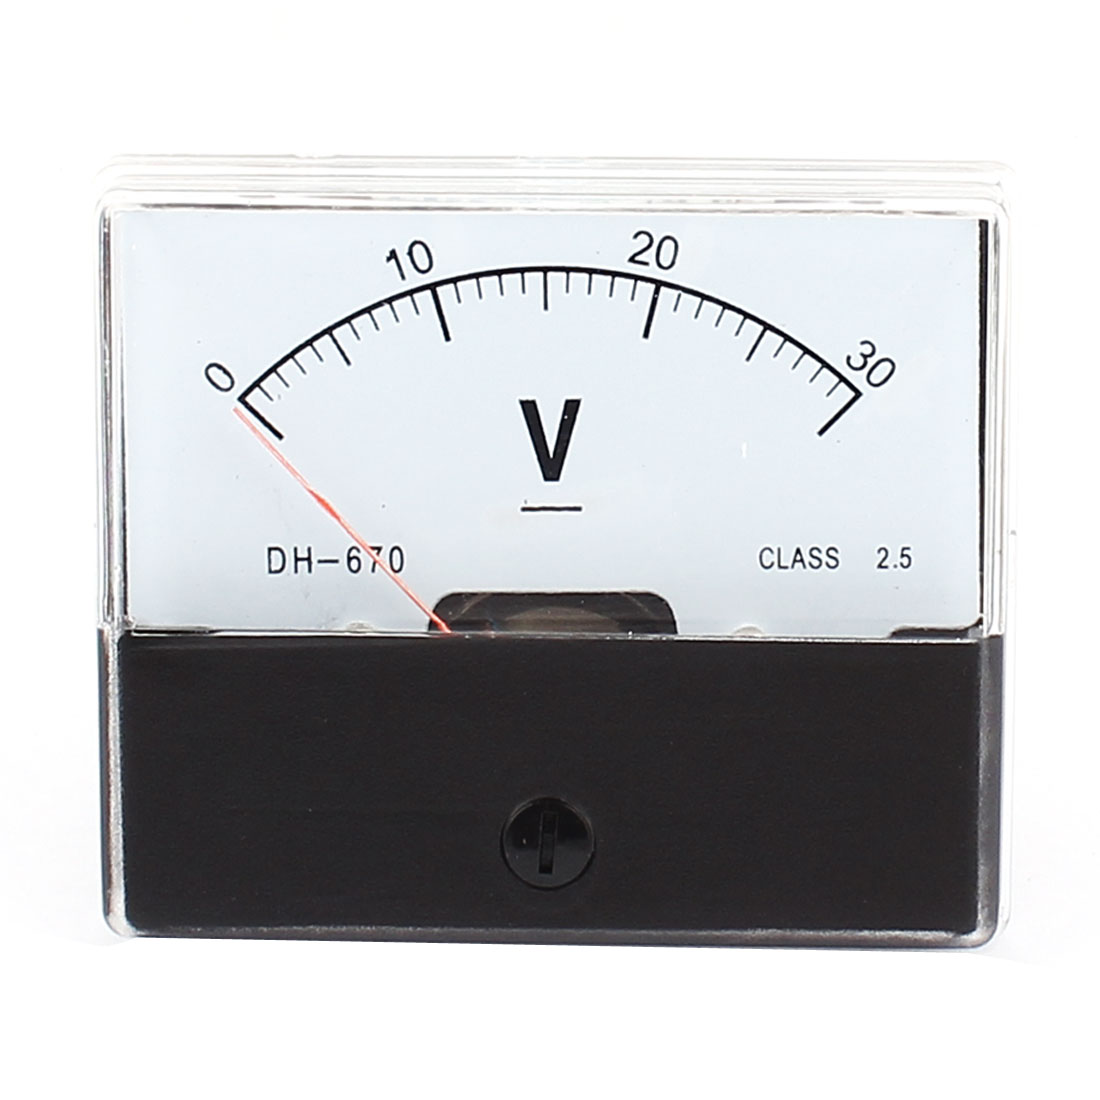 DH670 DC 0-30V Voltage Analogue Needle Panel Meter Voltmeter